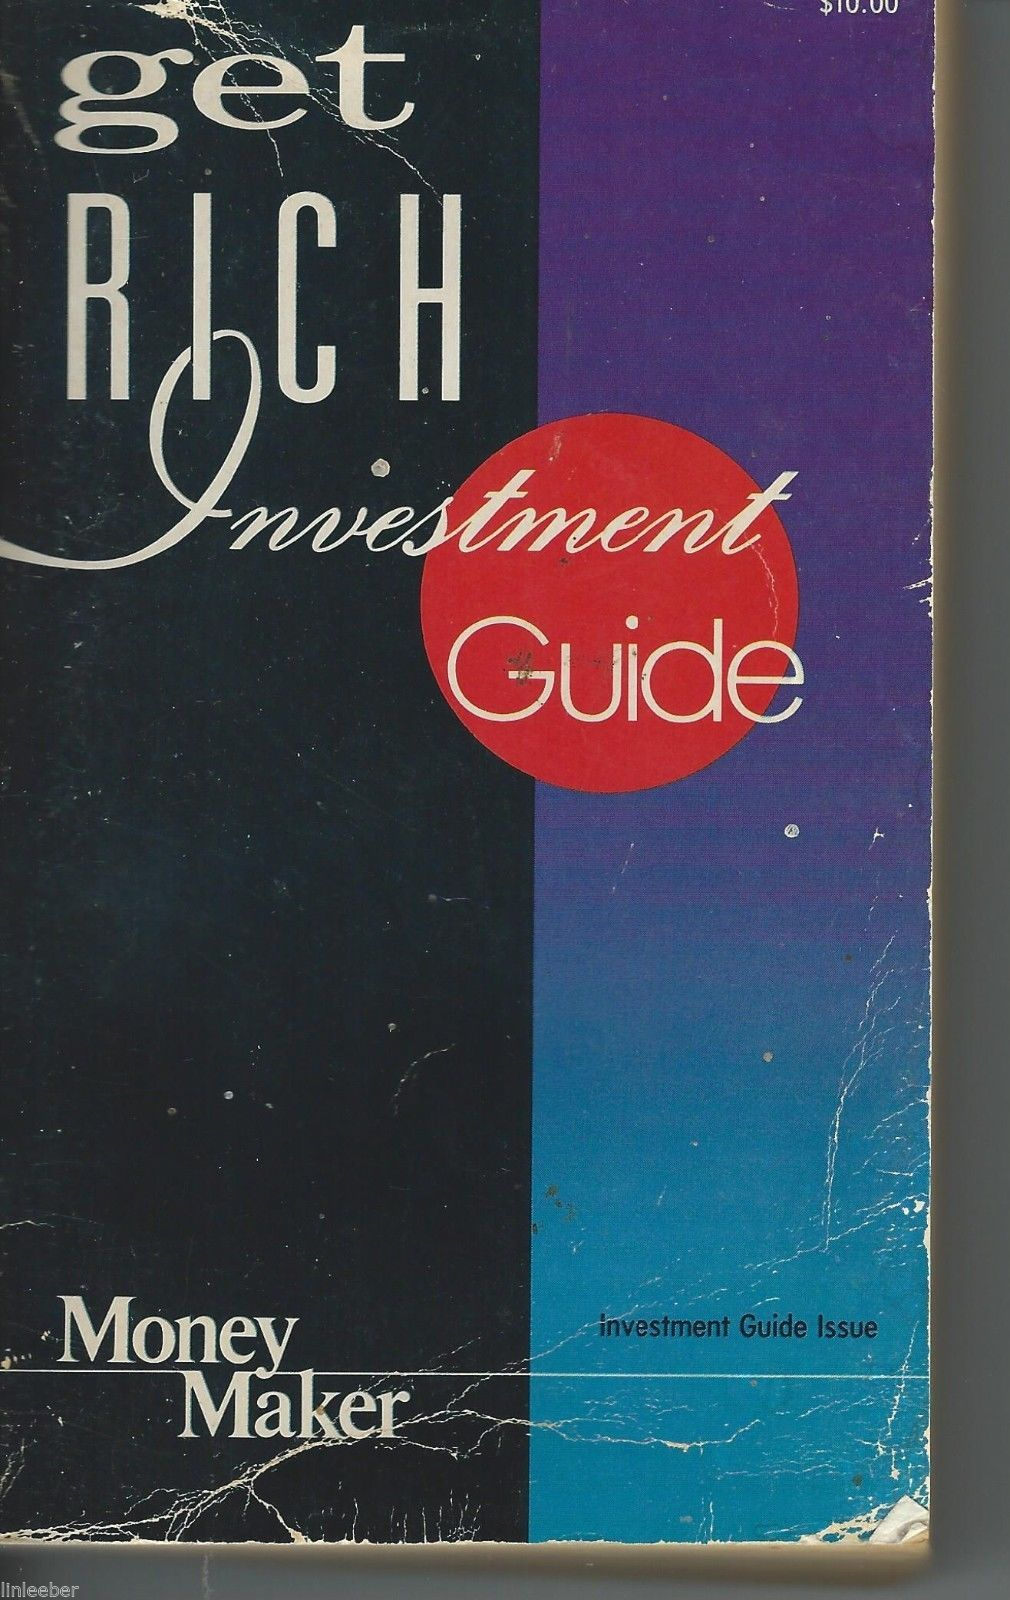 GET RICH INVESTMENT GUIDE by CONSUMER'S DIGEST INC.1985 PB VOL6/NO2 MONEY MAKER.